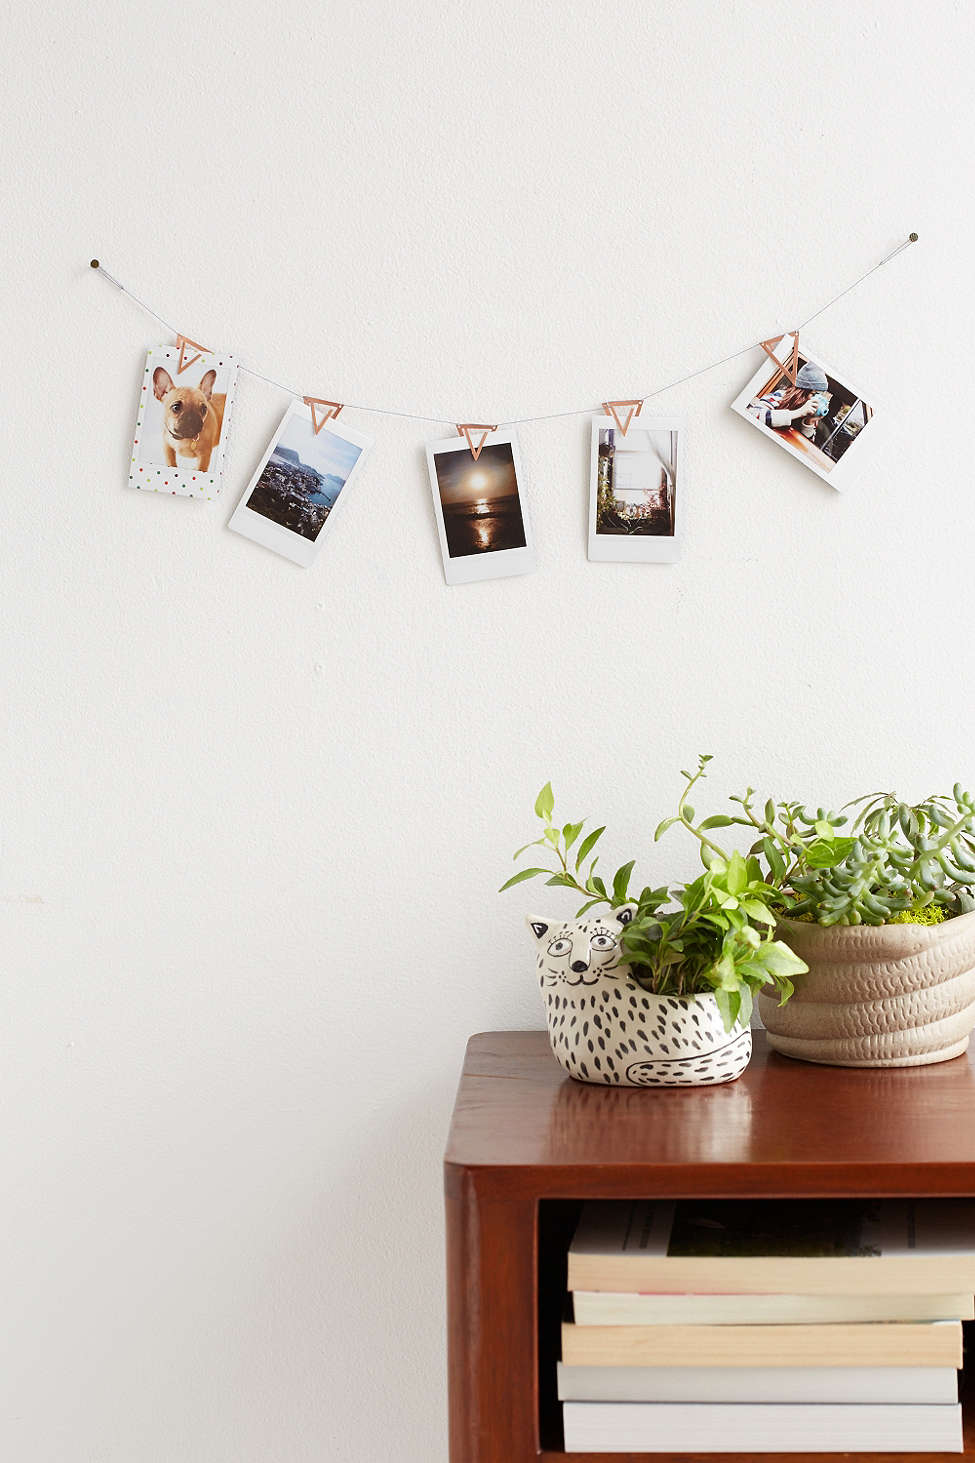 Copper photo clip banner from Urban Outfitters